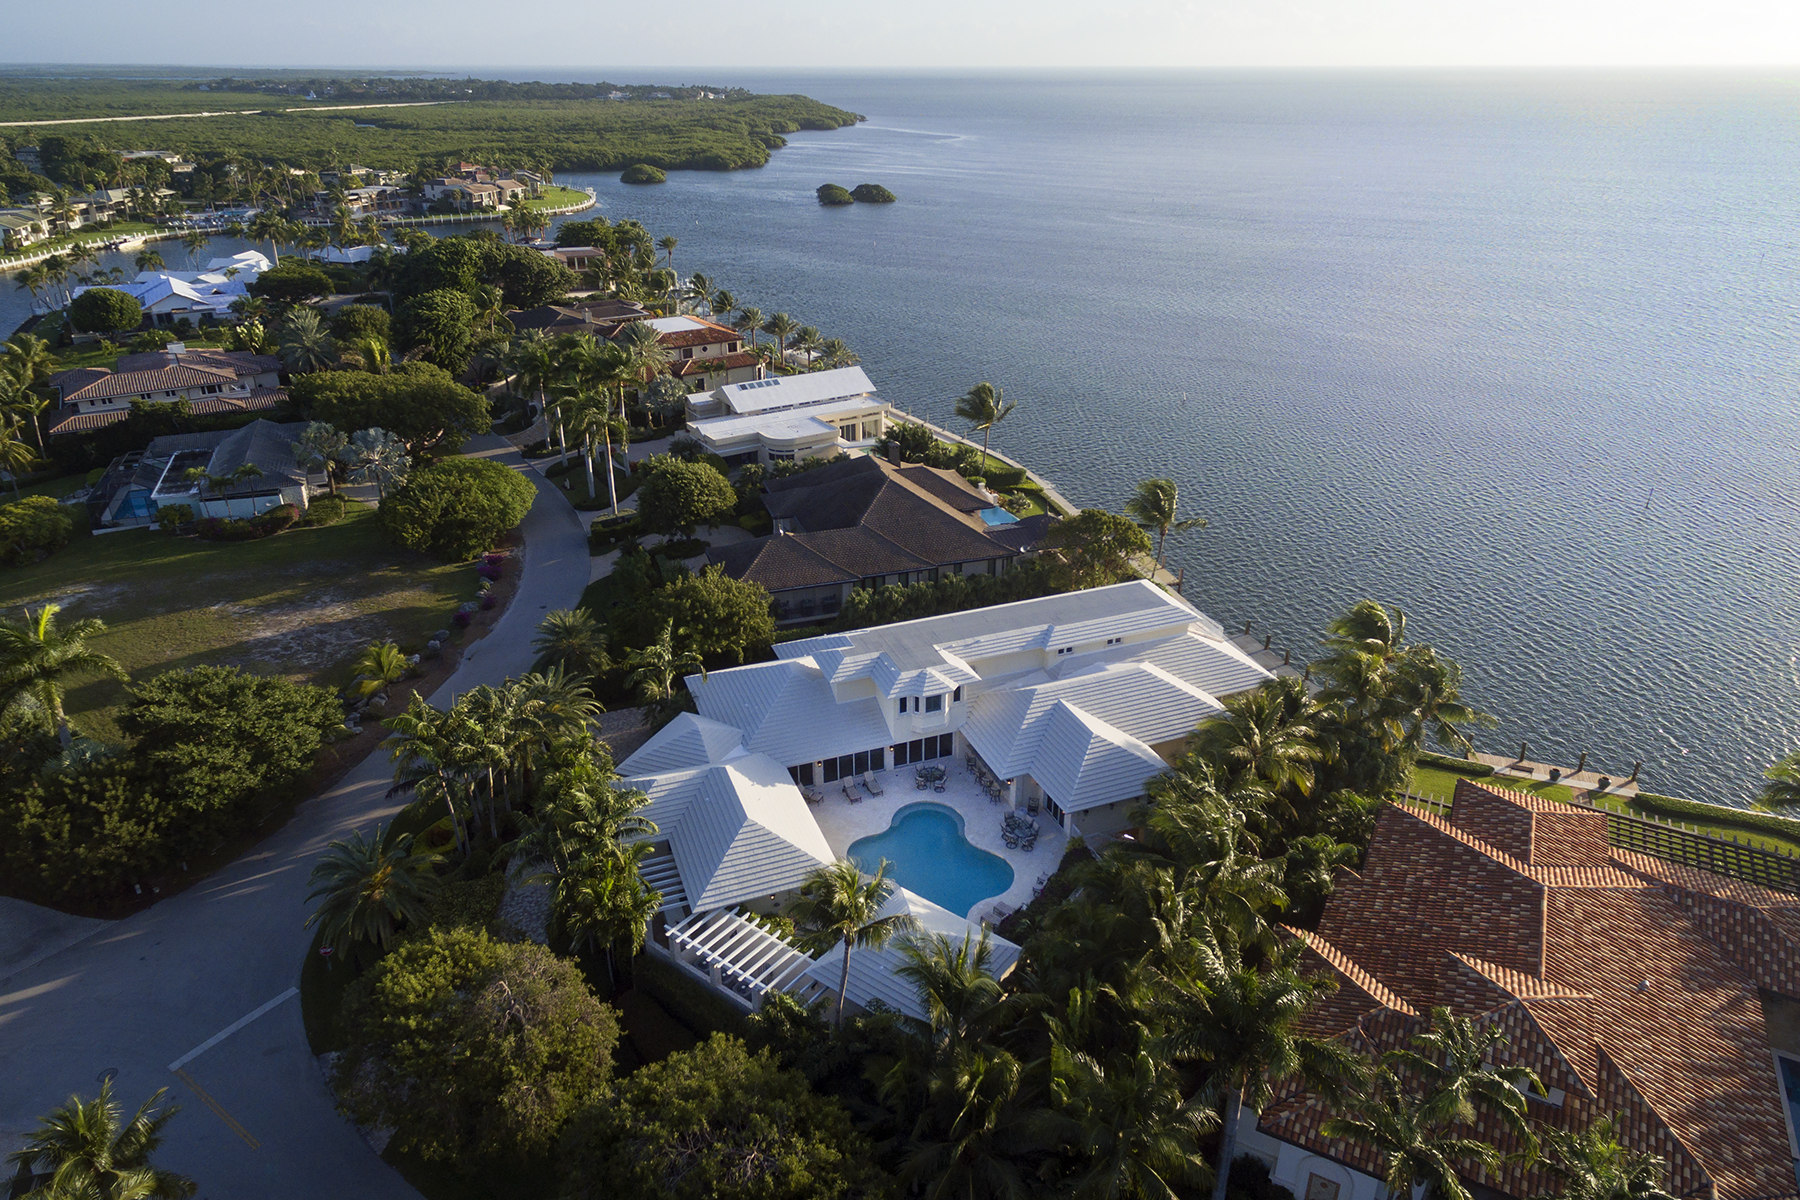 Single Family Home for Sale at Extraordinary Oceanfront Home at Ocean Reef 24 Angelfish Cay Drive, Ocean Reef Community, Key Largo, Florida, 33037 United States